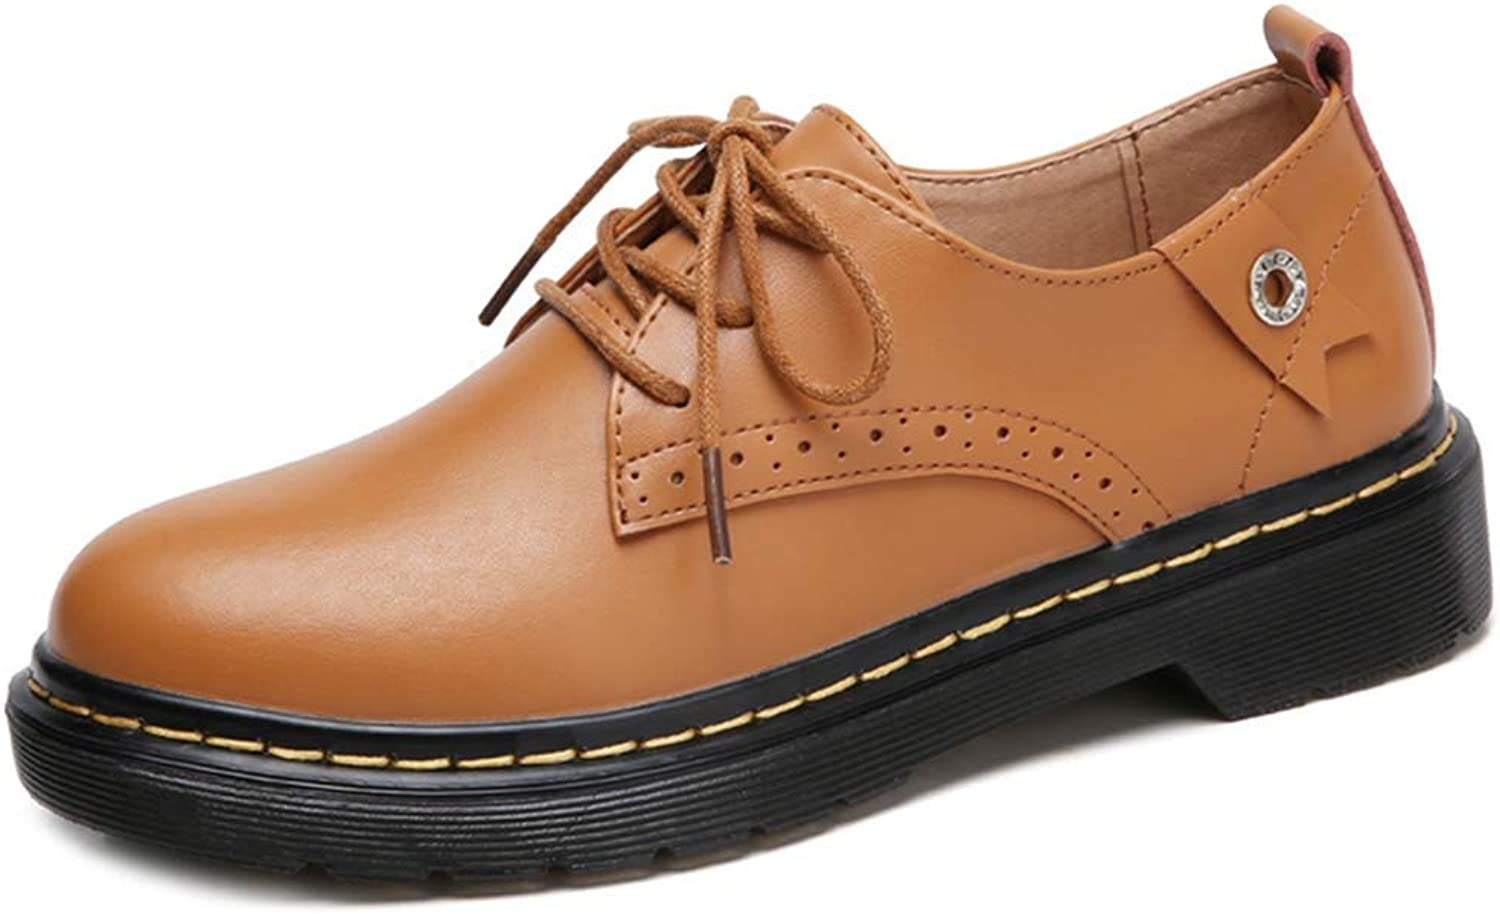 Beautiful - Fashion Women's Classic Wingtip Oxford shoes Vintage Lace up Flat Low Heel Casual Dress Oxfords Brogues Brown